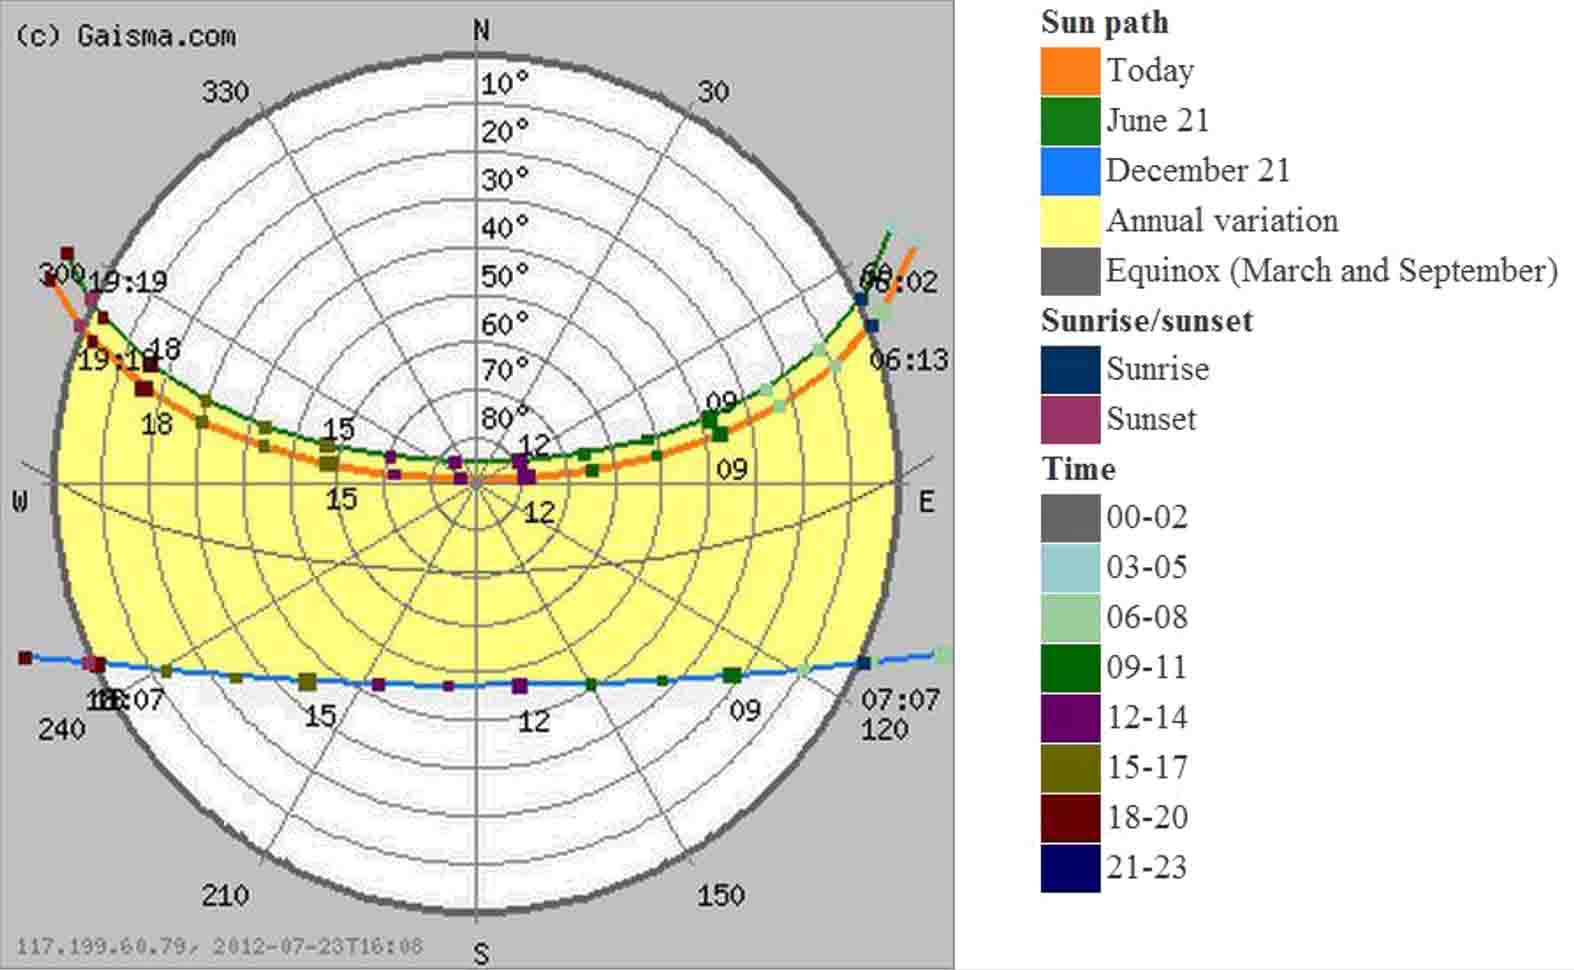 3d-sun-path-diagram-generator, 3d-sun-path-sketchup, apparent-position-of-the-sun, azimuth-angle-calculator, declination-of-the-sun-today, horizontal-sun-path-diagram, internal-and-external-sun-protection-devices, movement-of-the-sun, on-june-21-where-will-the-sun-appear, shadow-determination, solar-angle-calculator, solar-angle-calculator-excel, solar-diagram-architecture, solar-zenith-angle, stereographic-sun-path-diagram, stereographic-sunpath-diagram, sun-angle-and-seasons, sun-angle-chart, sun-path-analysis, sun-path-diagram-architecture-presentation, sun-path-diagram-for-mumbai, sun-path-diagram-of-mumbai, sun-path-diagram-png, sun-path-diagram-software, sun-path-png, sun-path-site-analysis, sun-peg-chart, sunpath-diagram-for-mumbai, sunpath-diagram-of-mumbai, uses-of-sun-path-diagram, when-during-the-year-is-daylight-longest-in-mumbai,